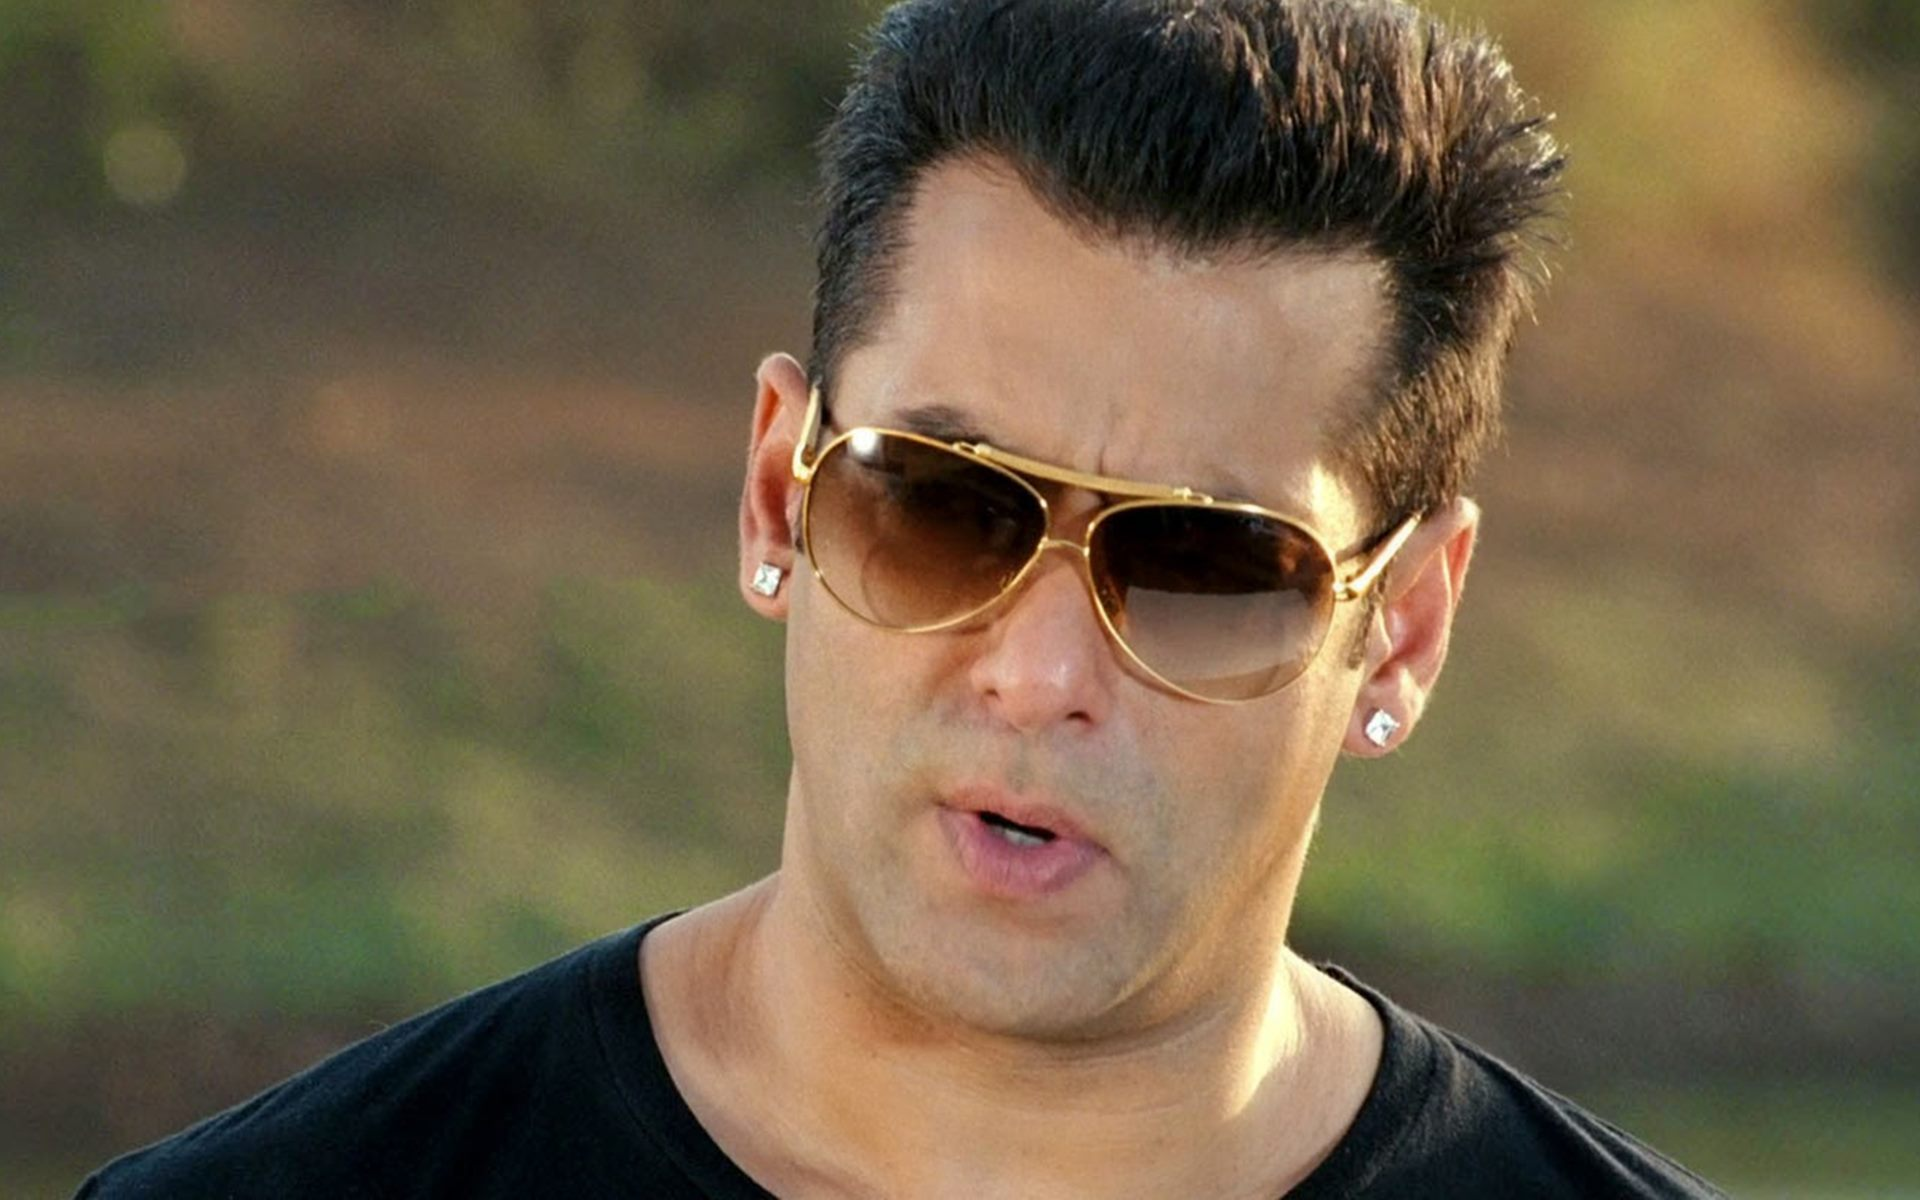 hindi actor Salman Khan Best Actor Wallpaper hd images photos